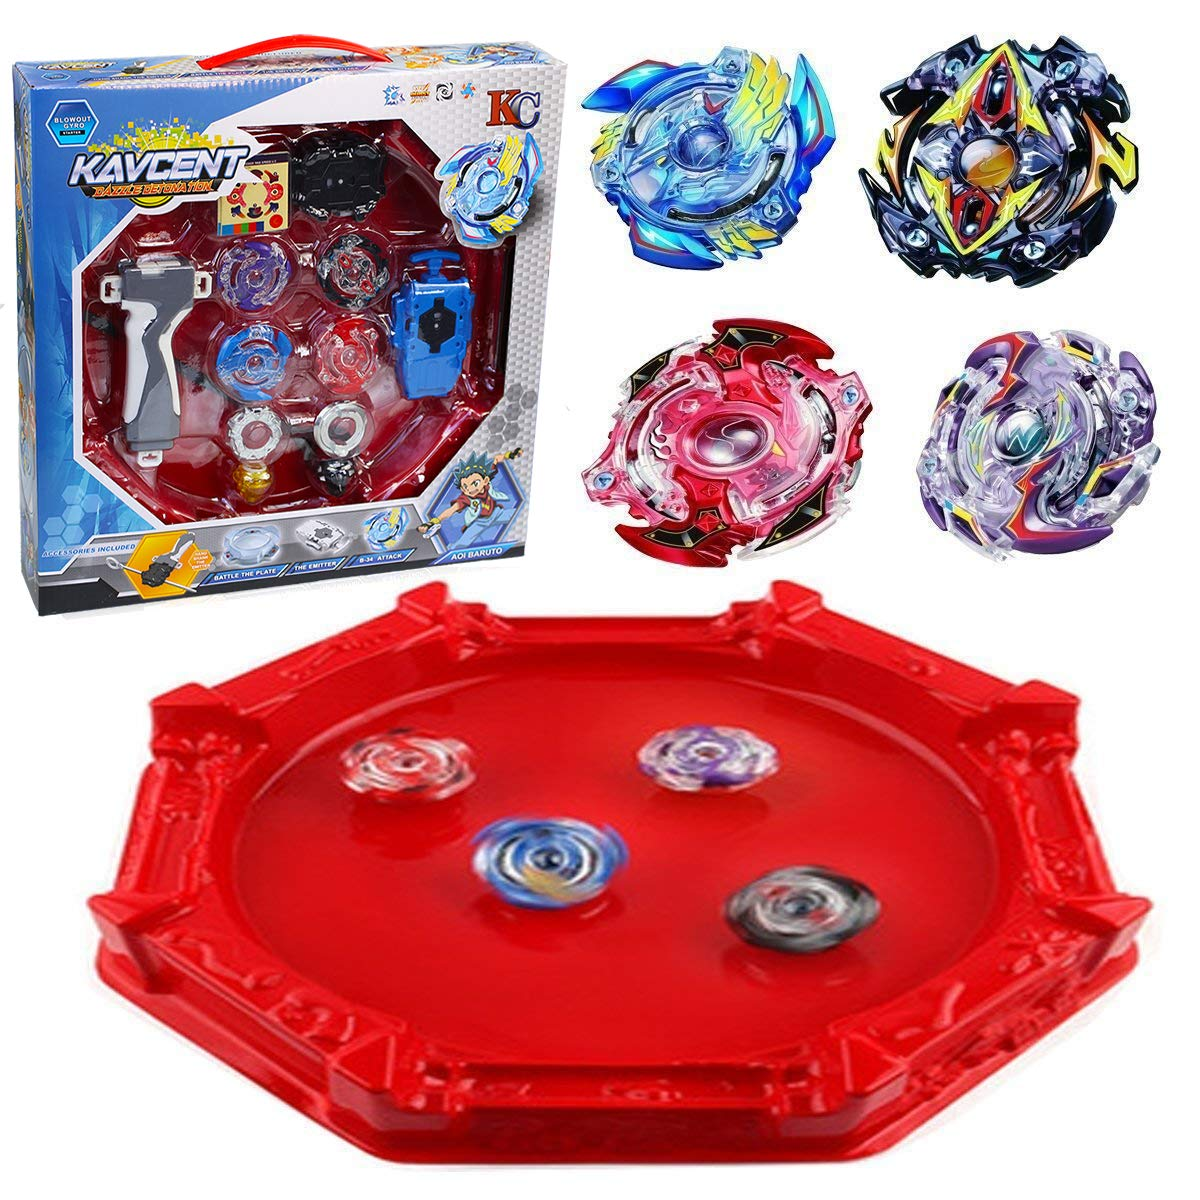 KAVCENT Bey Battle Burst Turbo Evolution Star Storm Battle Set Arena Included with 4D Launcher Grip Set Gyro Burst by KAVCENT